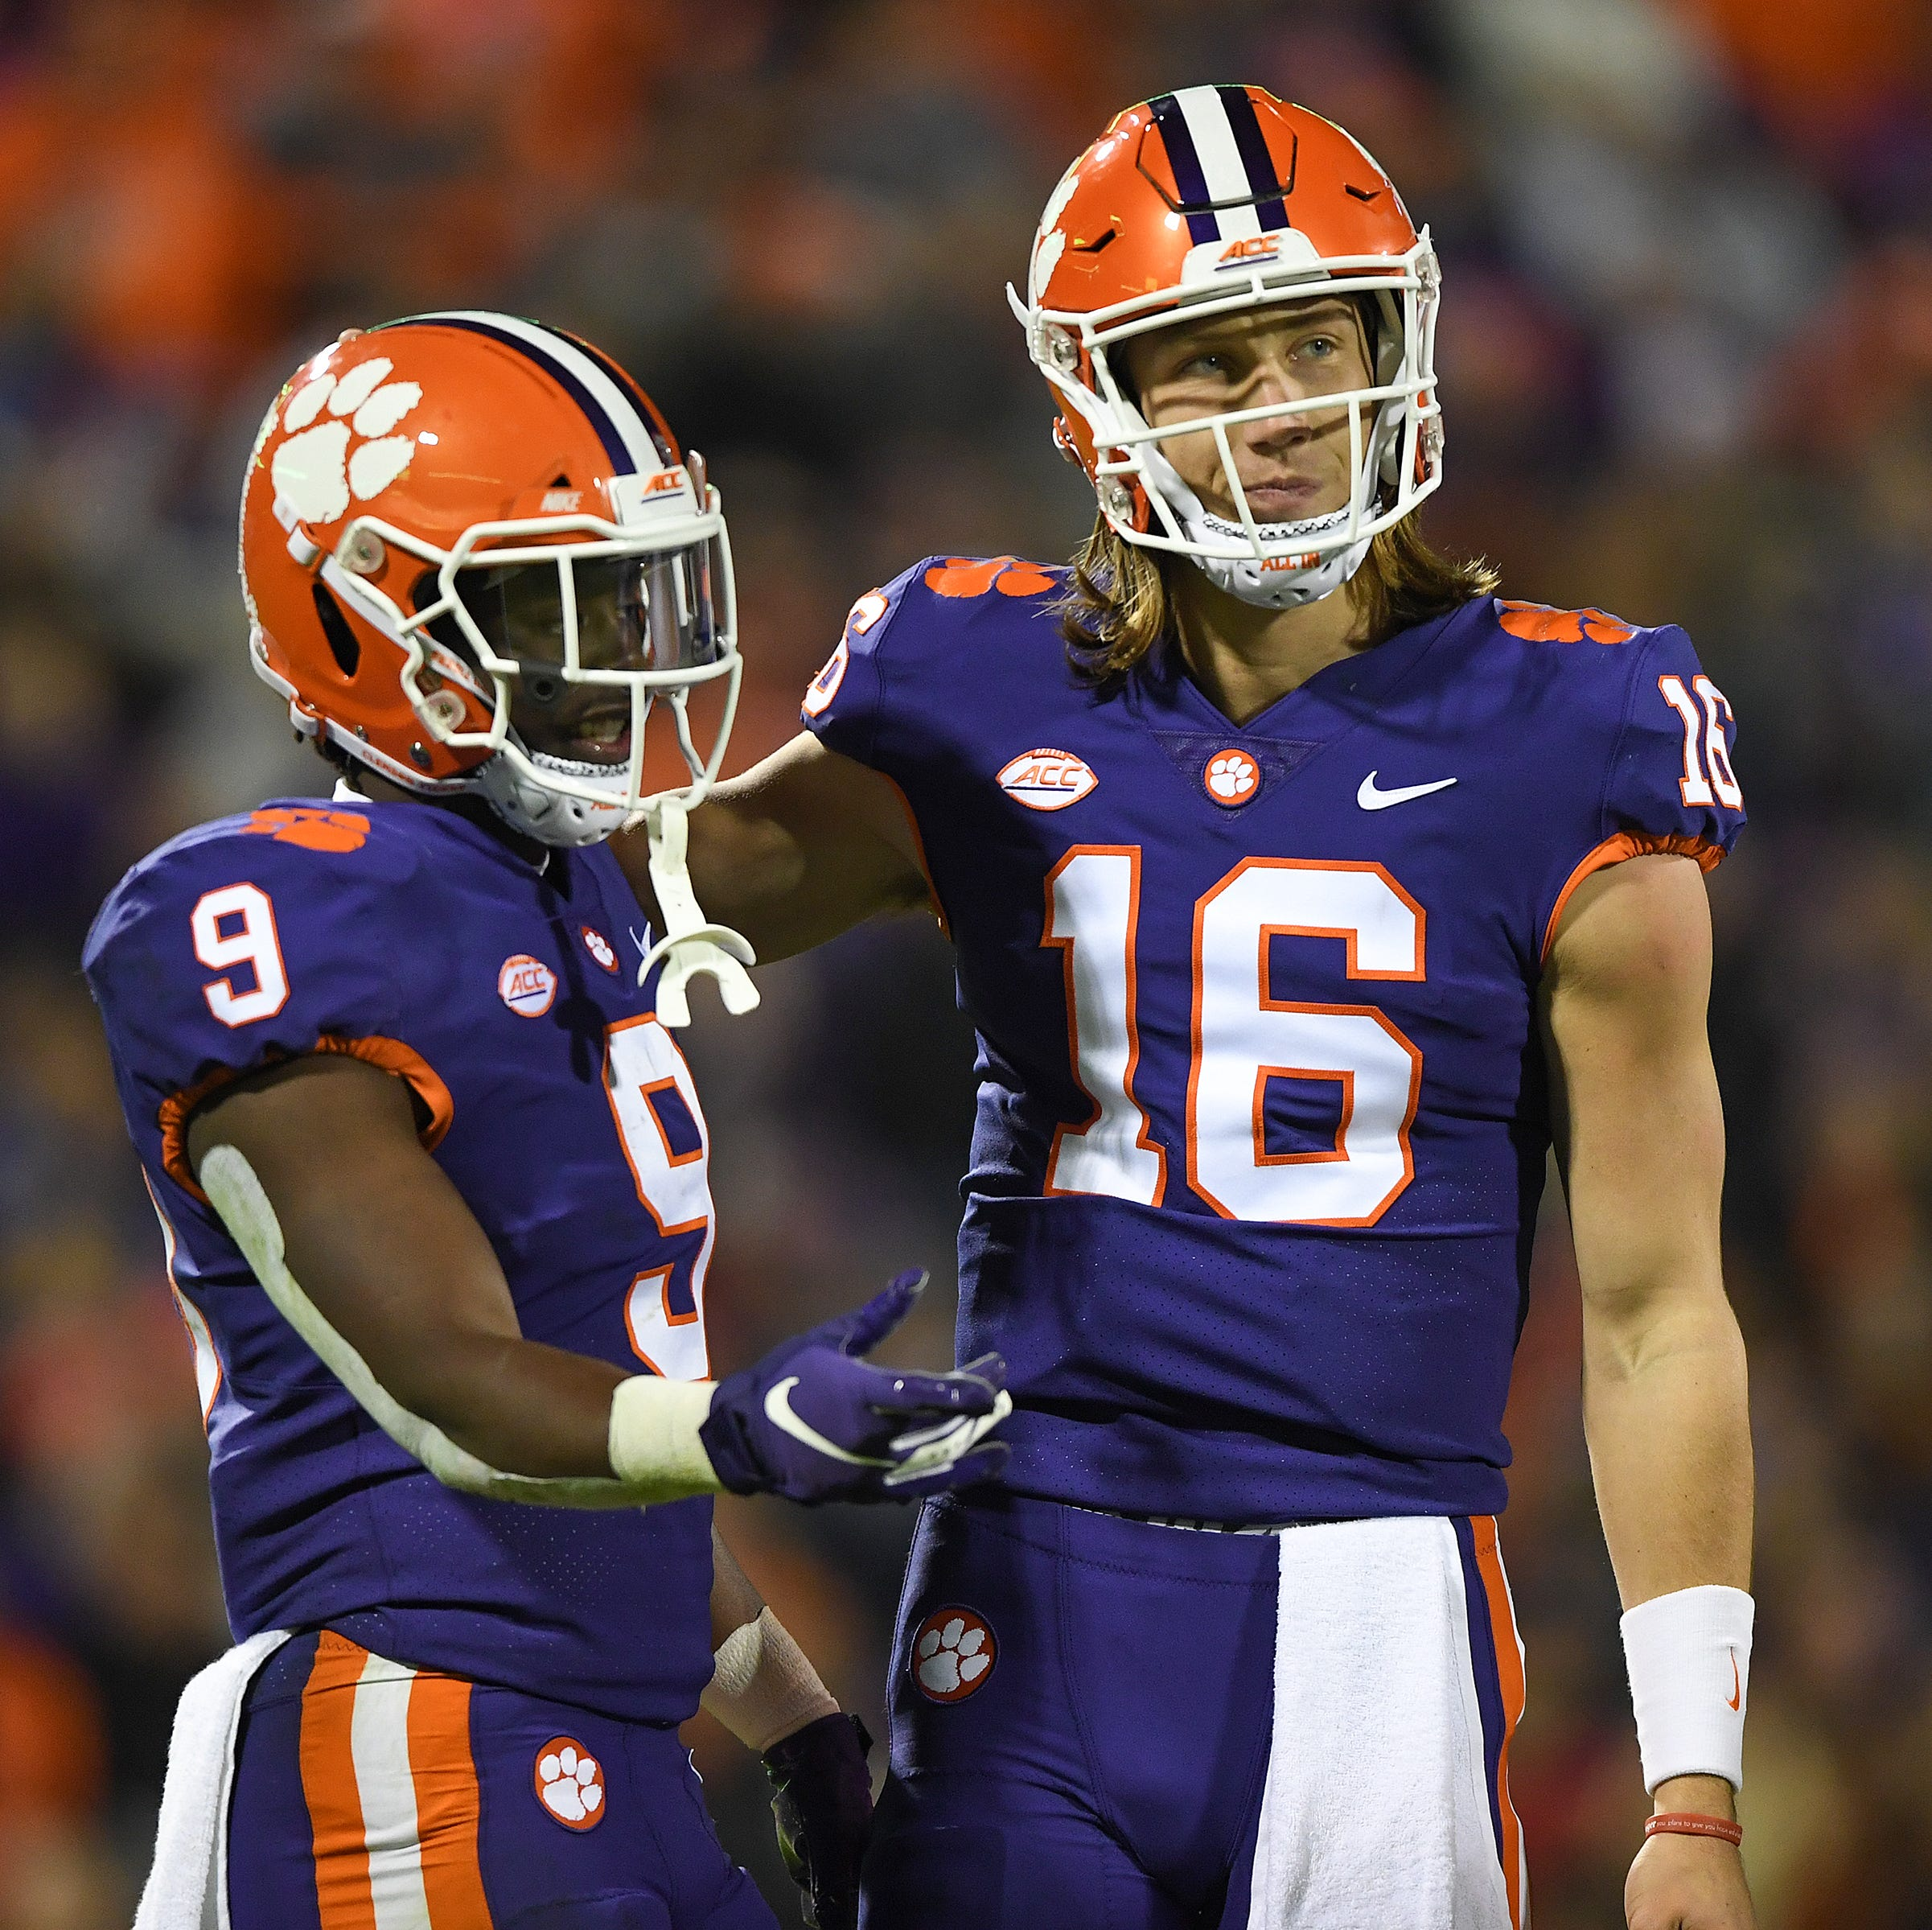 Better late than never: Clemson shrugs off slow start to rout Duke